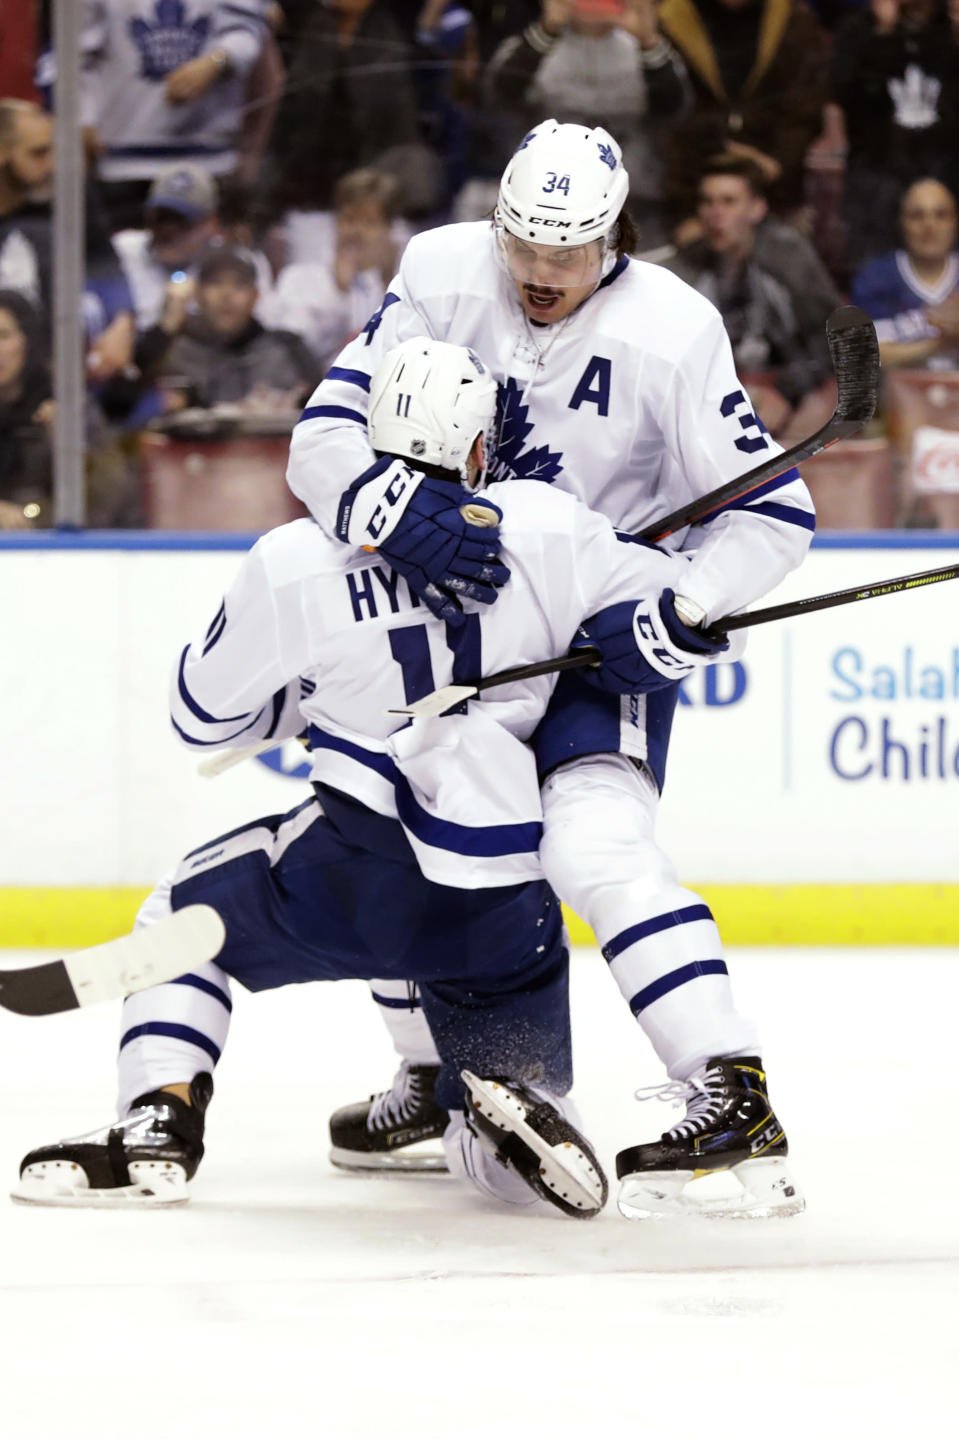 Toronto Maple Leafs left wing Zach Hyman (11) congratulates center Auston Matthews (34) after Matthews scored during the first period of the team's NHL hockey game against the Florida Panthers, Thursday, Feb. 27, 2020, in Sunrise, Fla. (AP Photo/Wilfredo Lee)